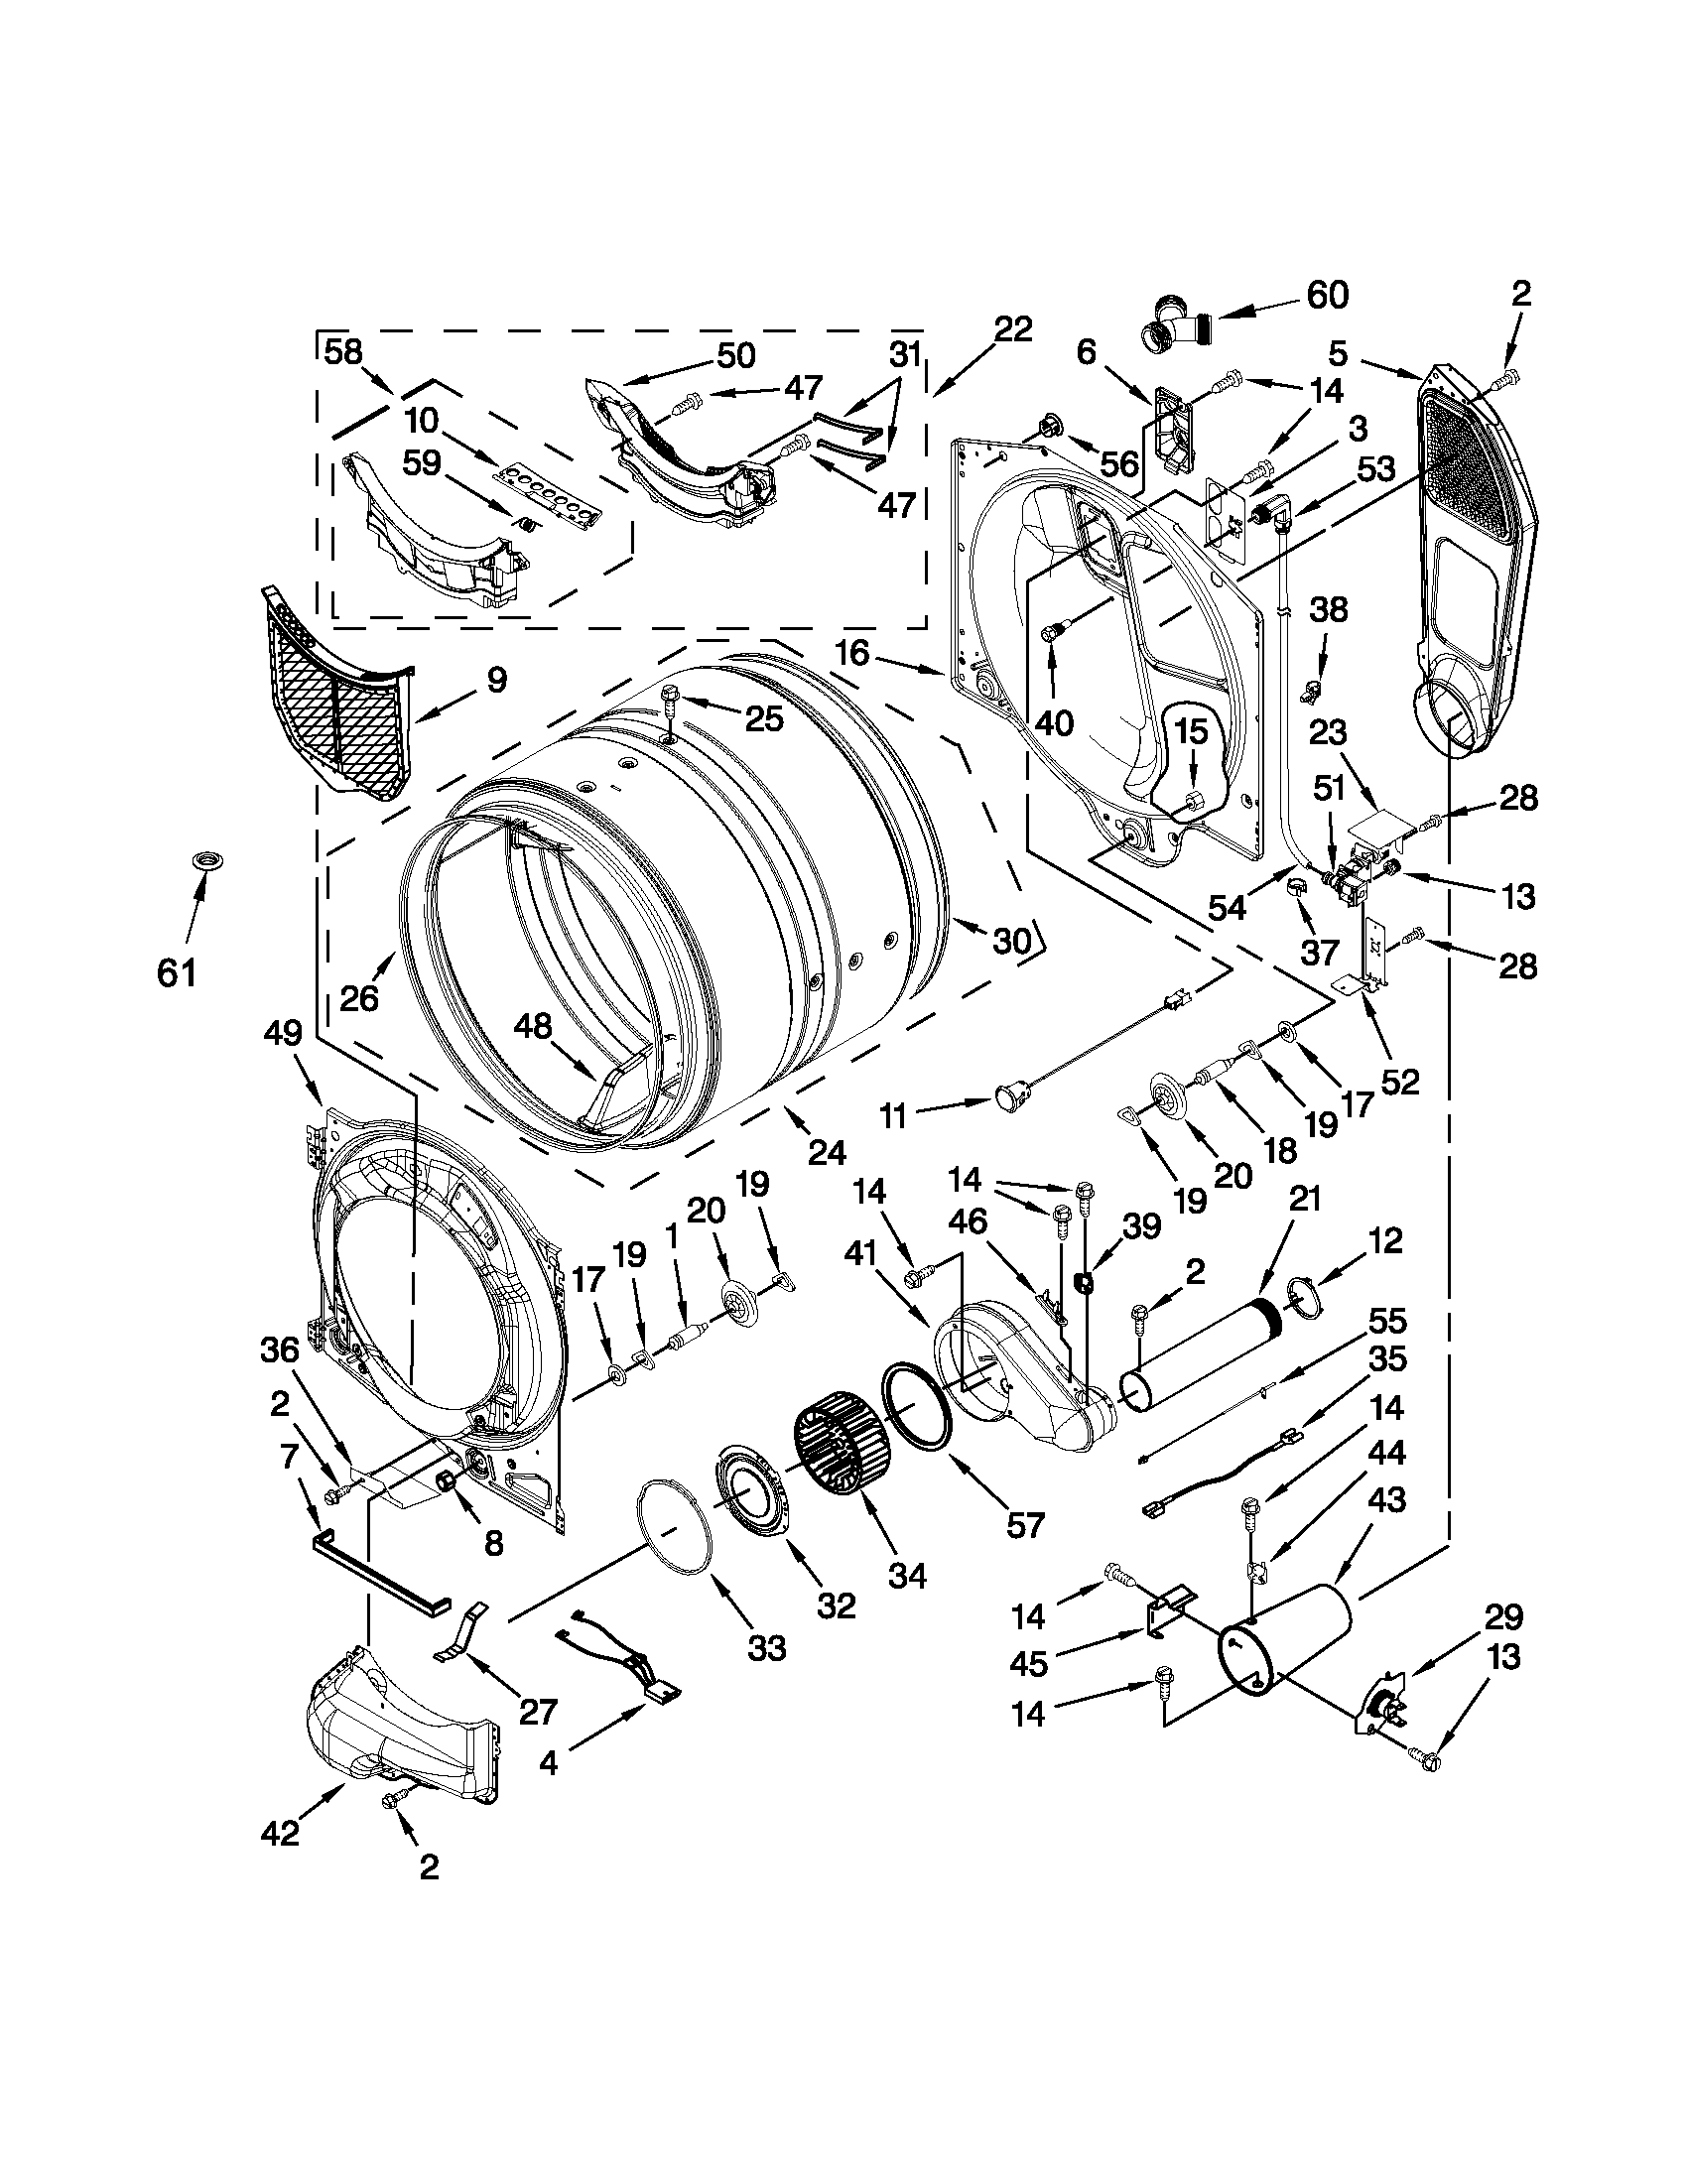 Maytag MGD4200BW0 bulkhead parts diagram